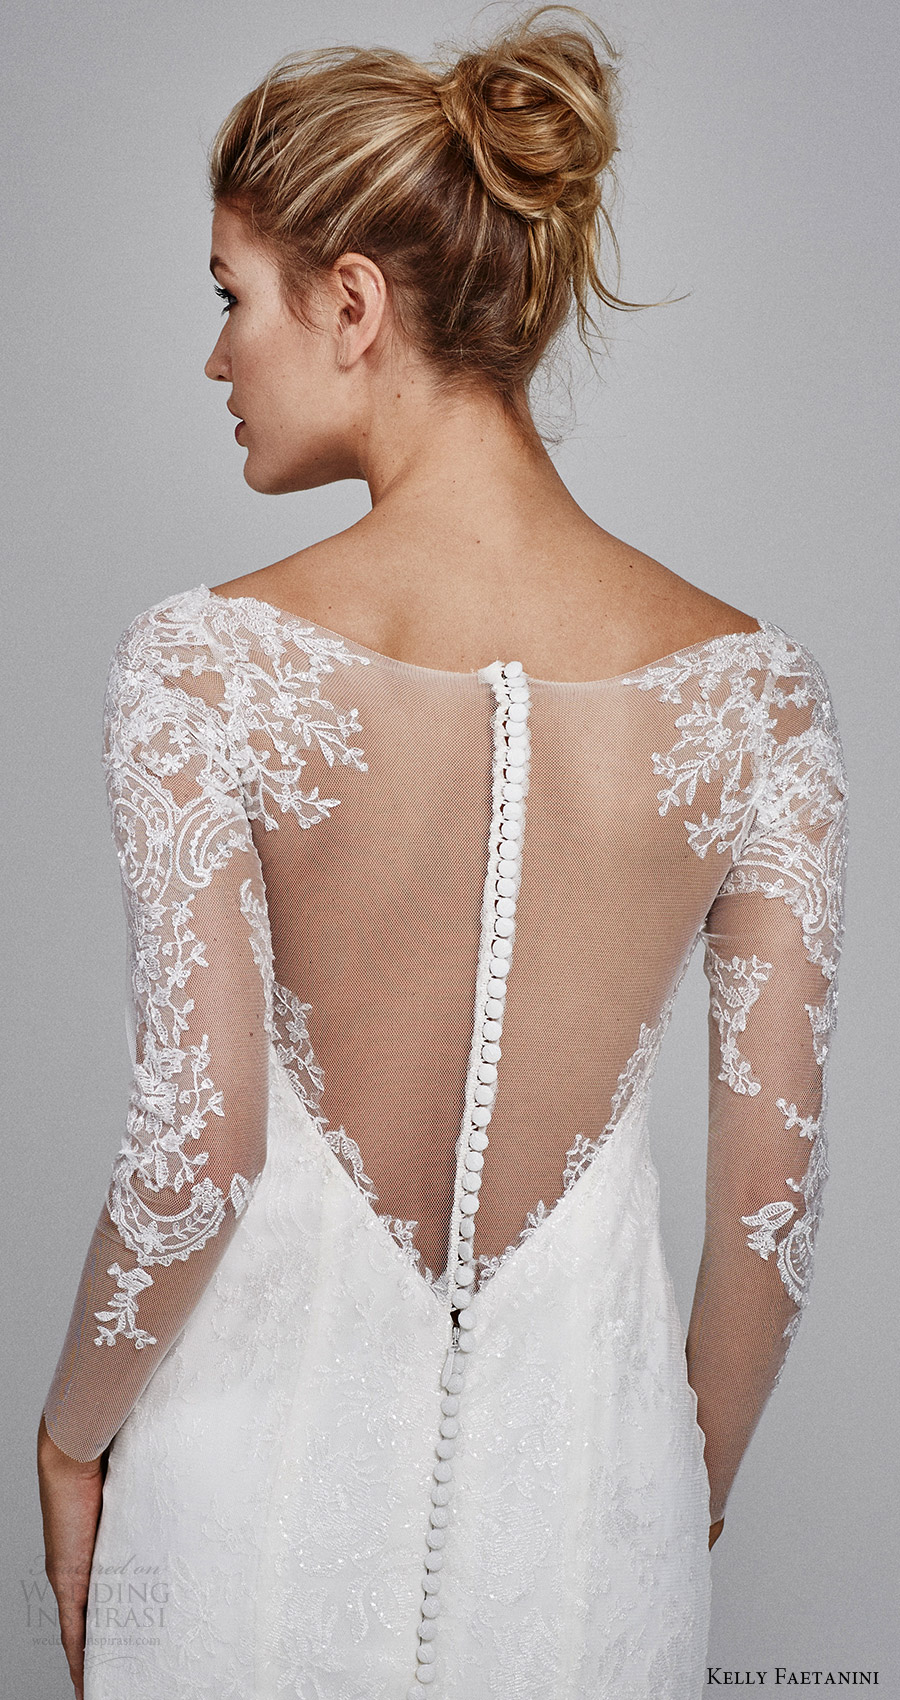 kelly faetanini bridal fall 2017 illusion long sleeves sweetheart trumpet lace wedding dress (delphine) zbv illusion back